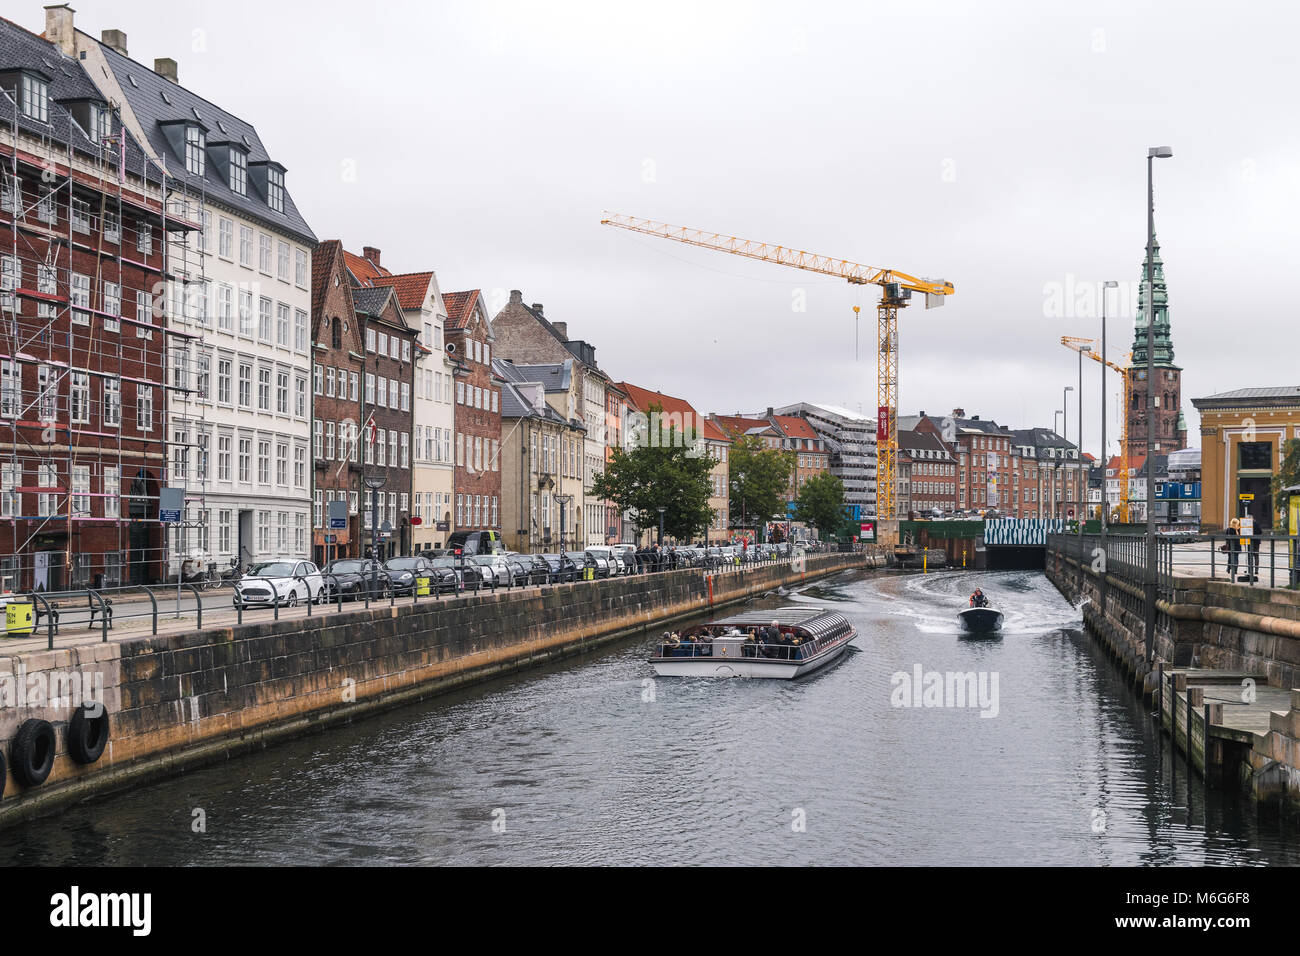 Copenhagen - October 23, 2016: View to different types of transportation in the city - Stock Image